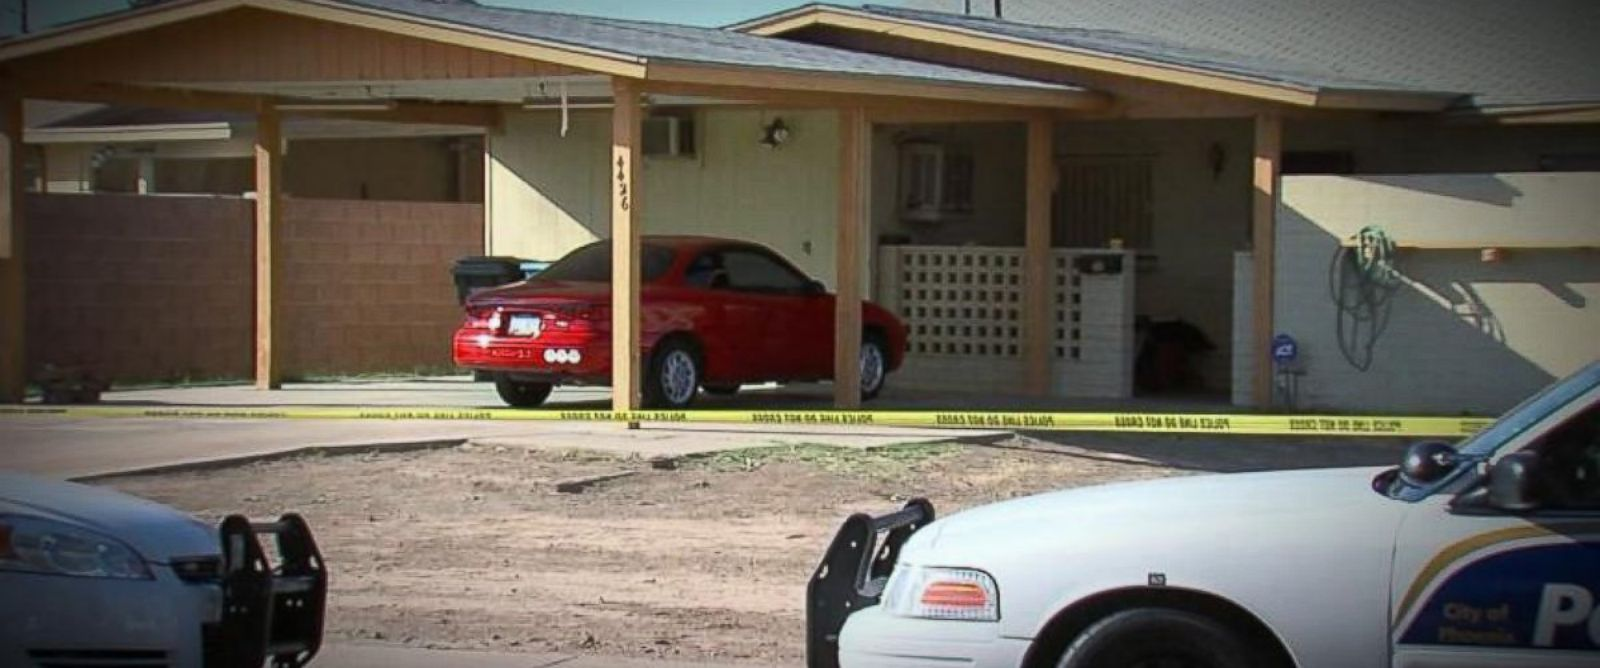 PHOTO: A widow in Phoenix, Ariz. shot a home invader on Sept. 3, 2014.